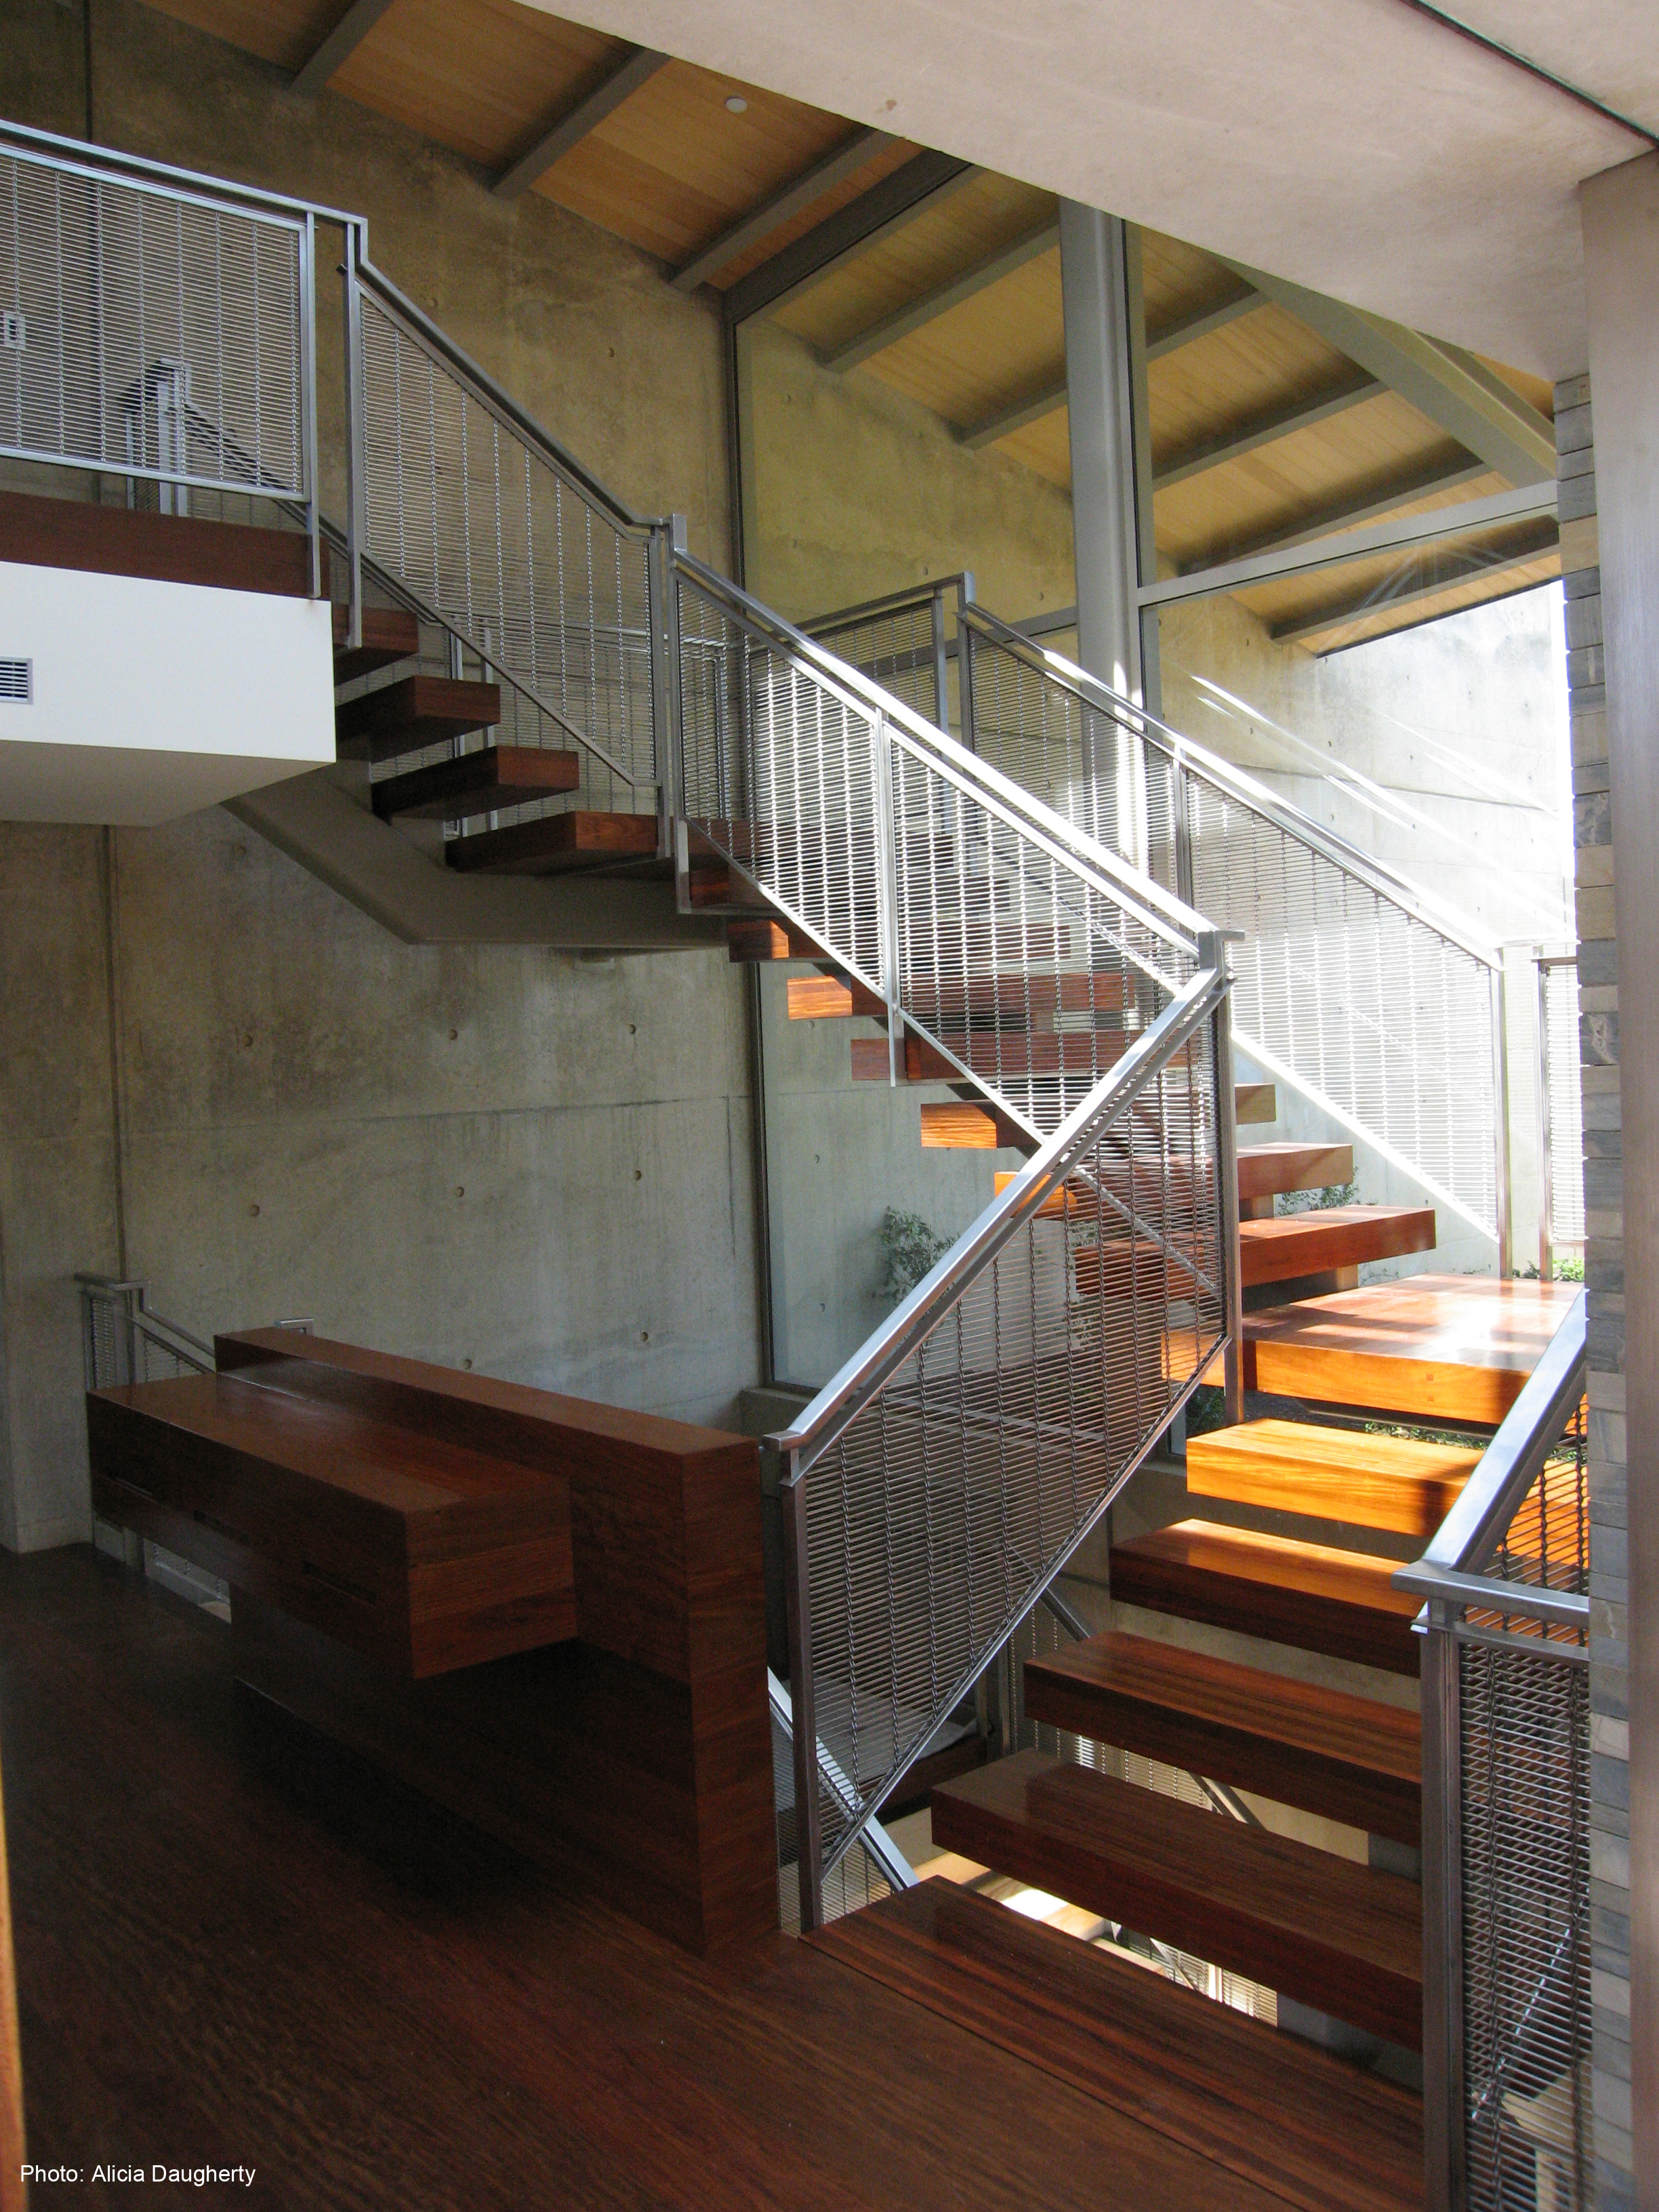 M13Z-145 Rigid Cable wire mesh is an essential element of this grand staircase design.